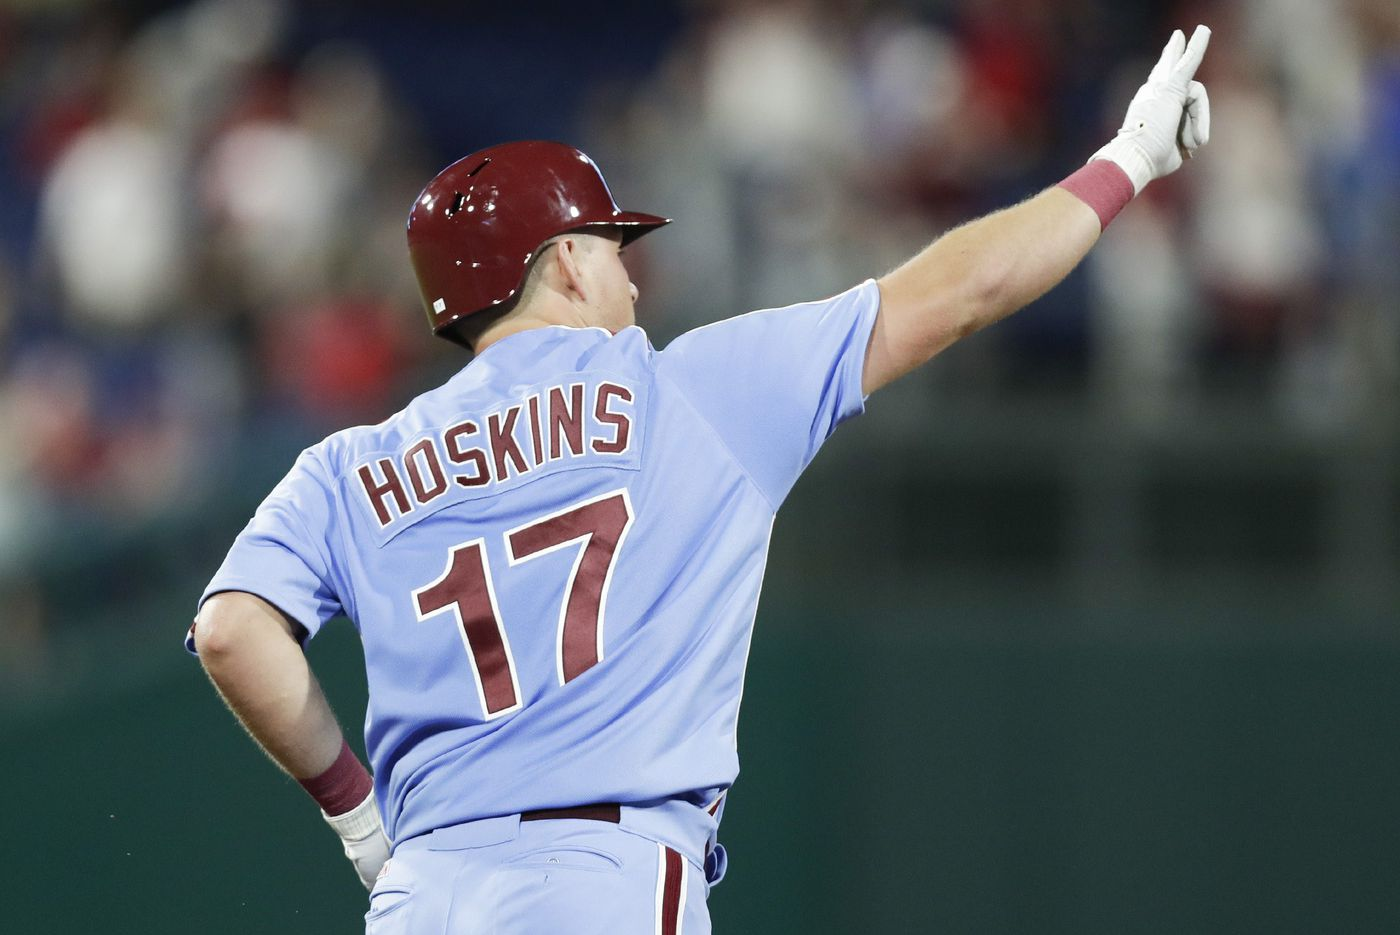 Rhys Hoskins challenged the Phils to kick the Marlins when they were down   Extra Innings